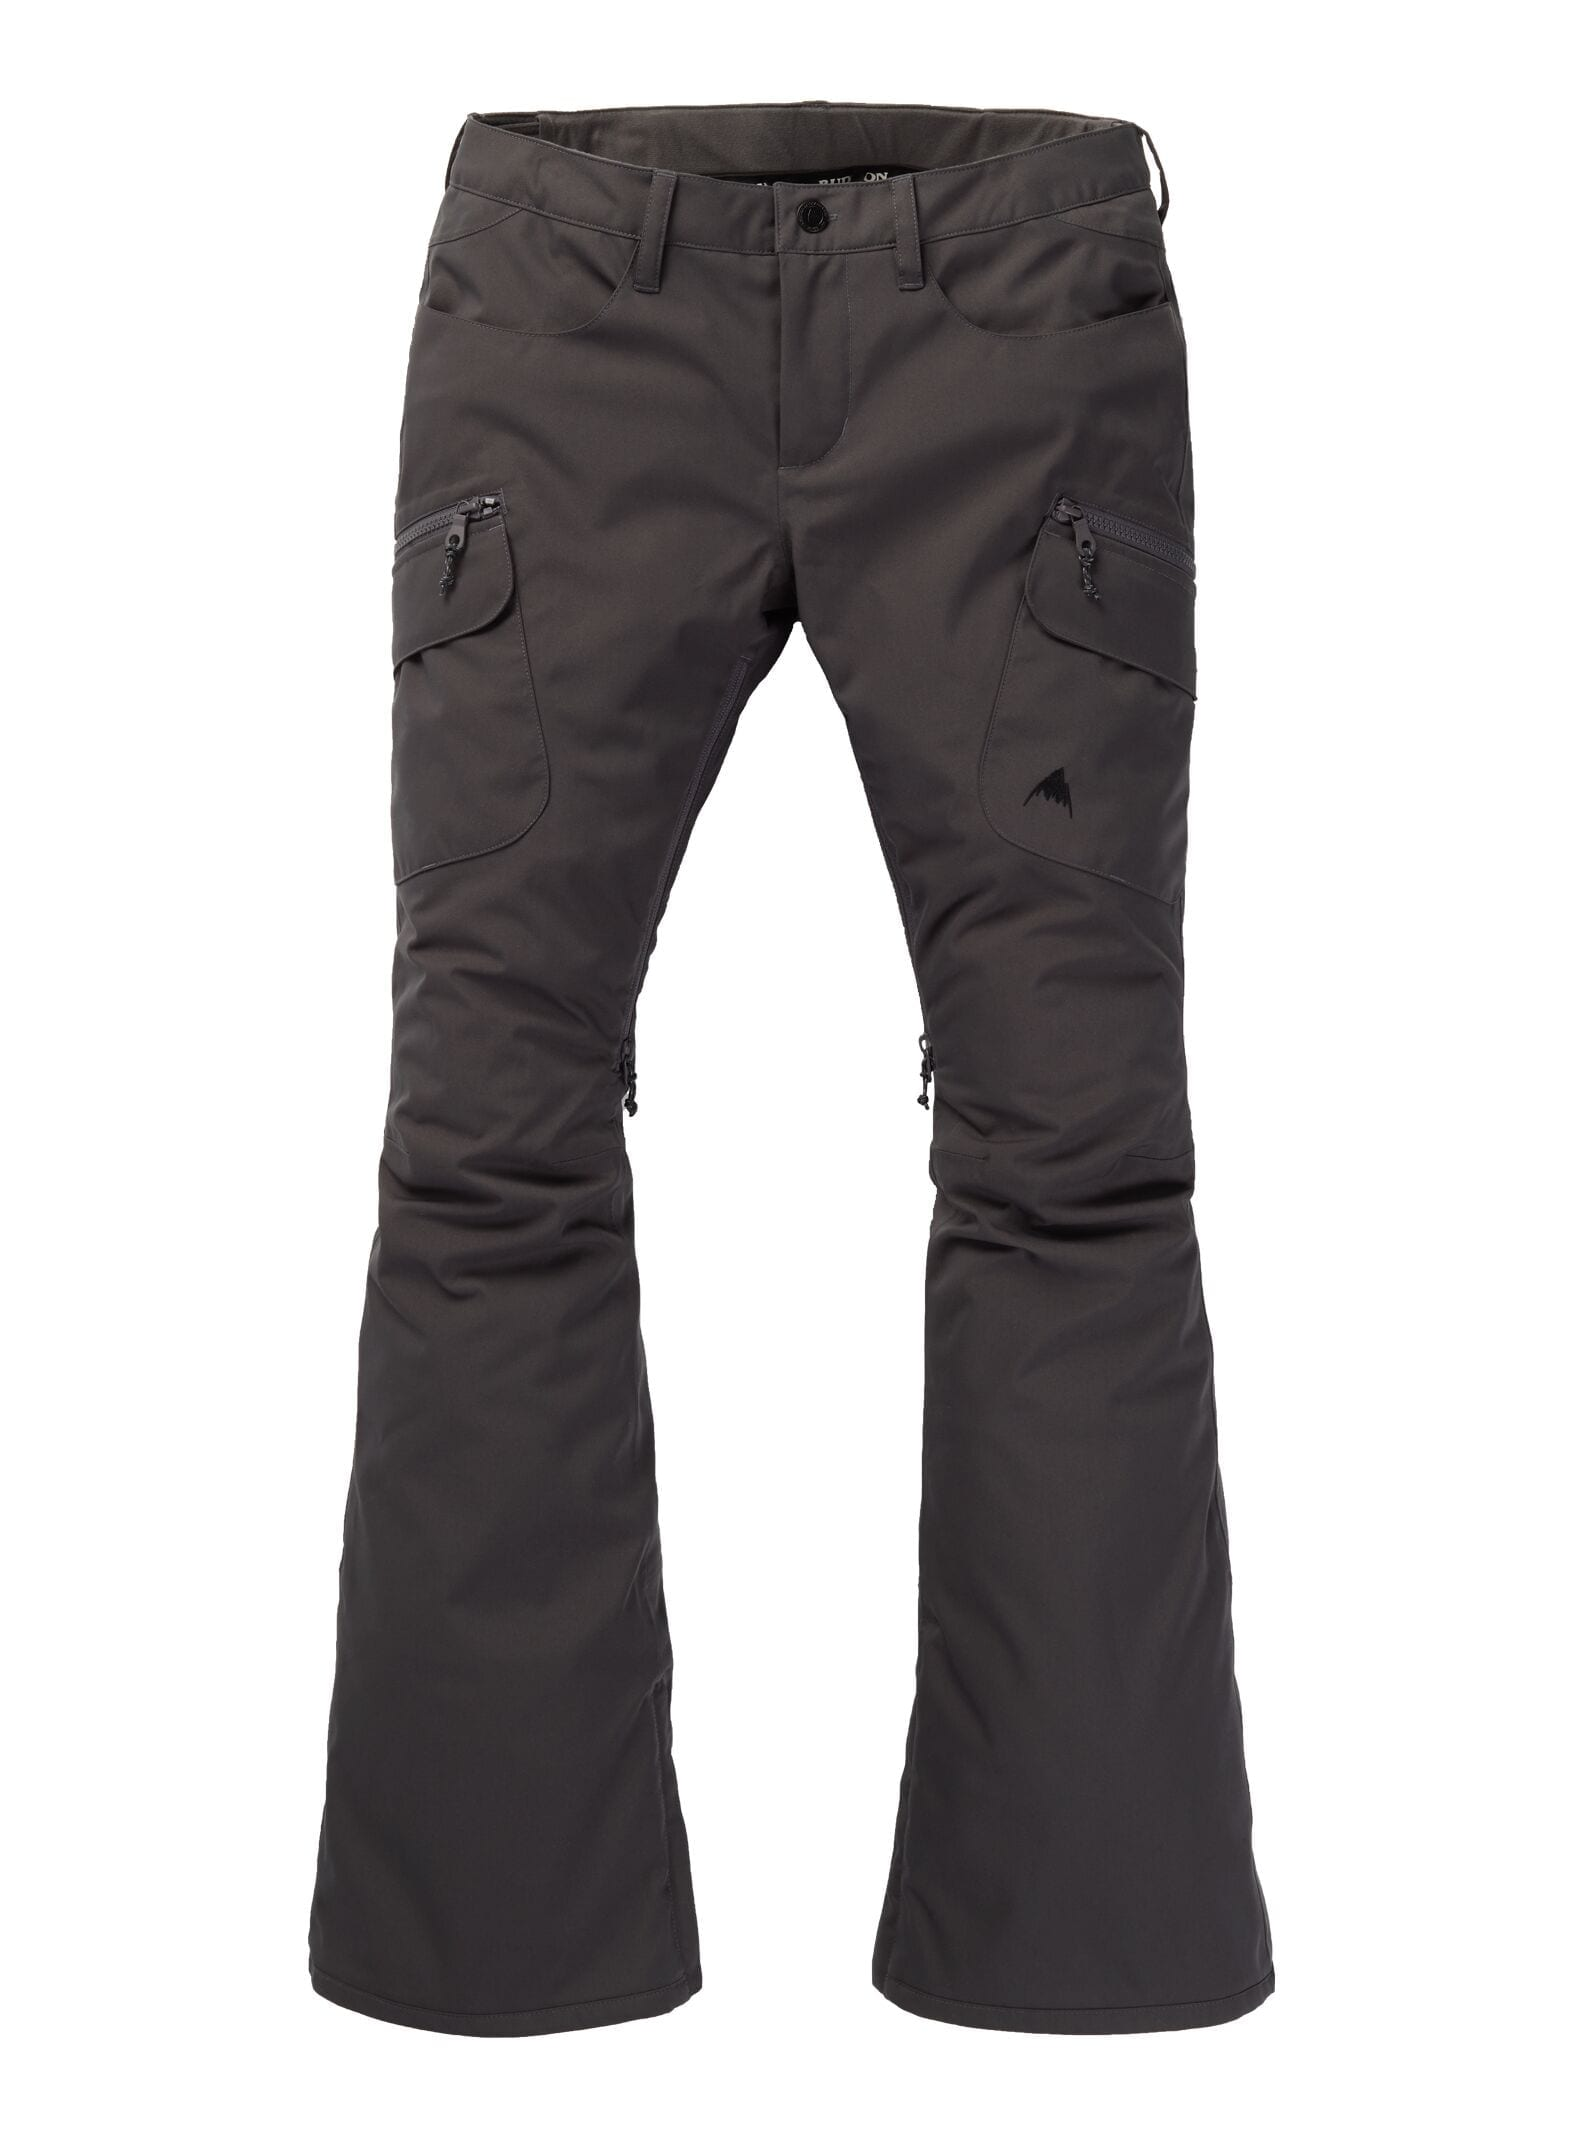 burton gloria pant, black, 179.99